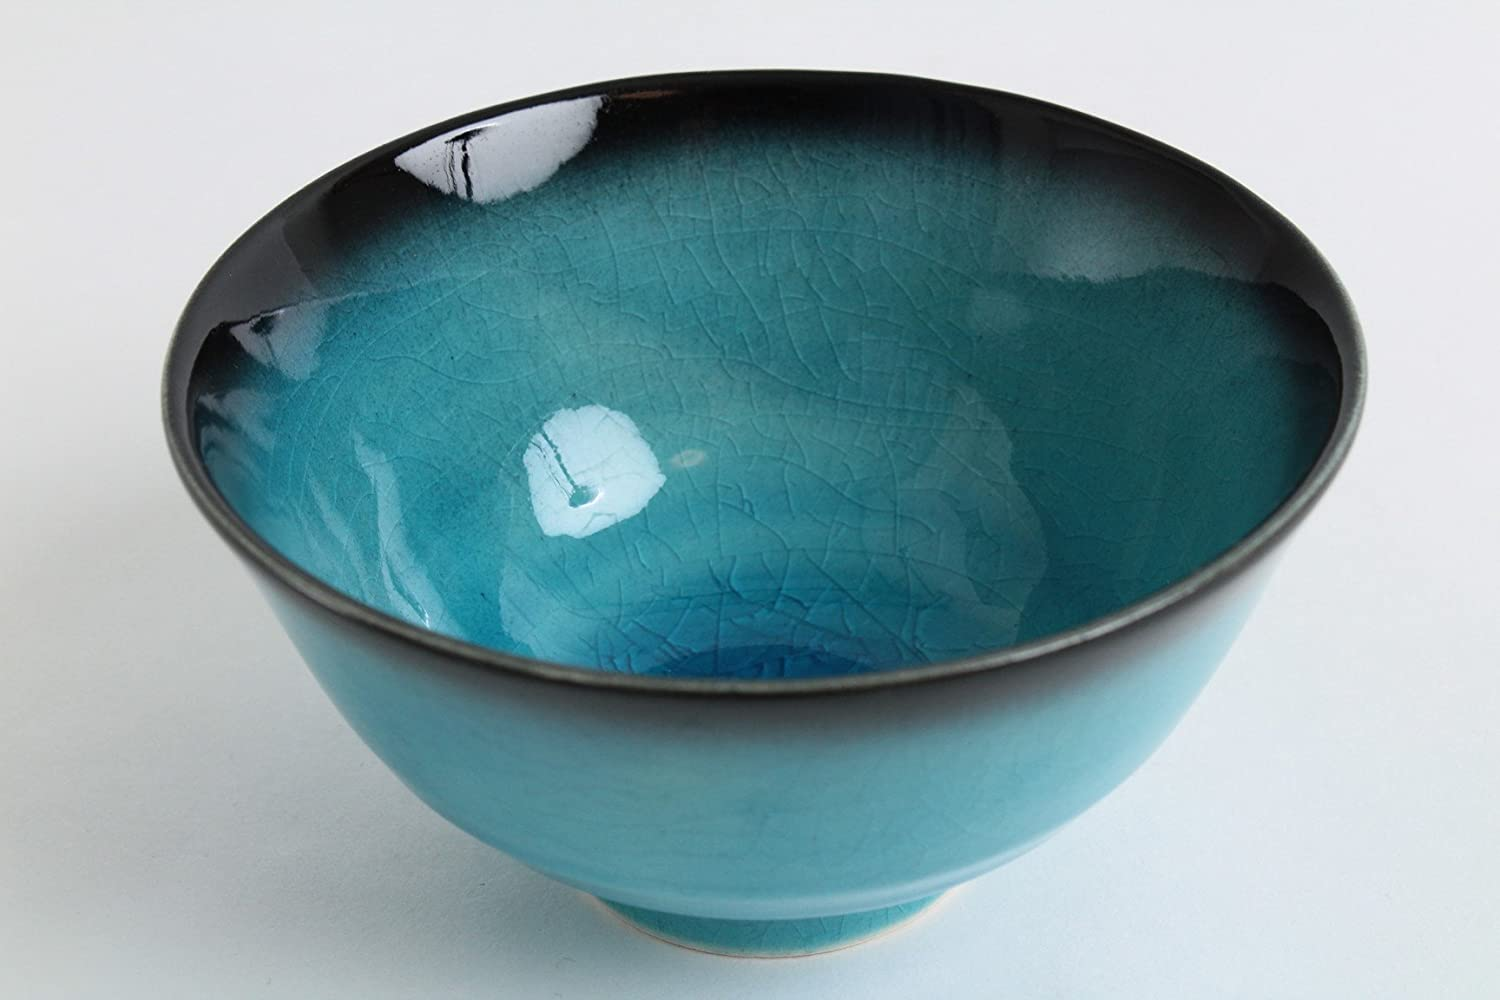 Mino ware Japanese Pottery Rice Bowl BLUE RIVERS Turquoise Blue Crackled BRC001